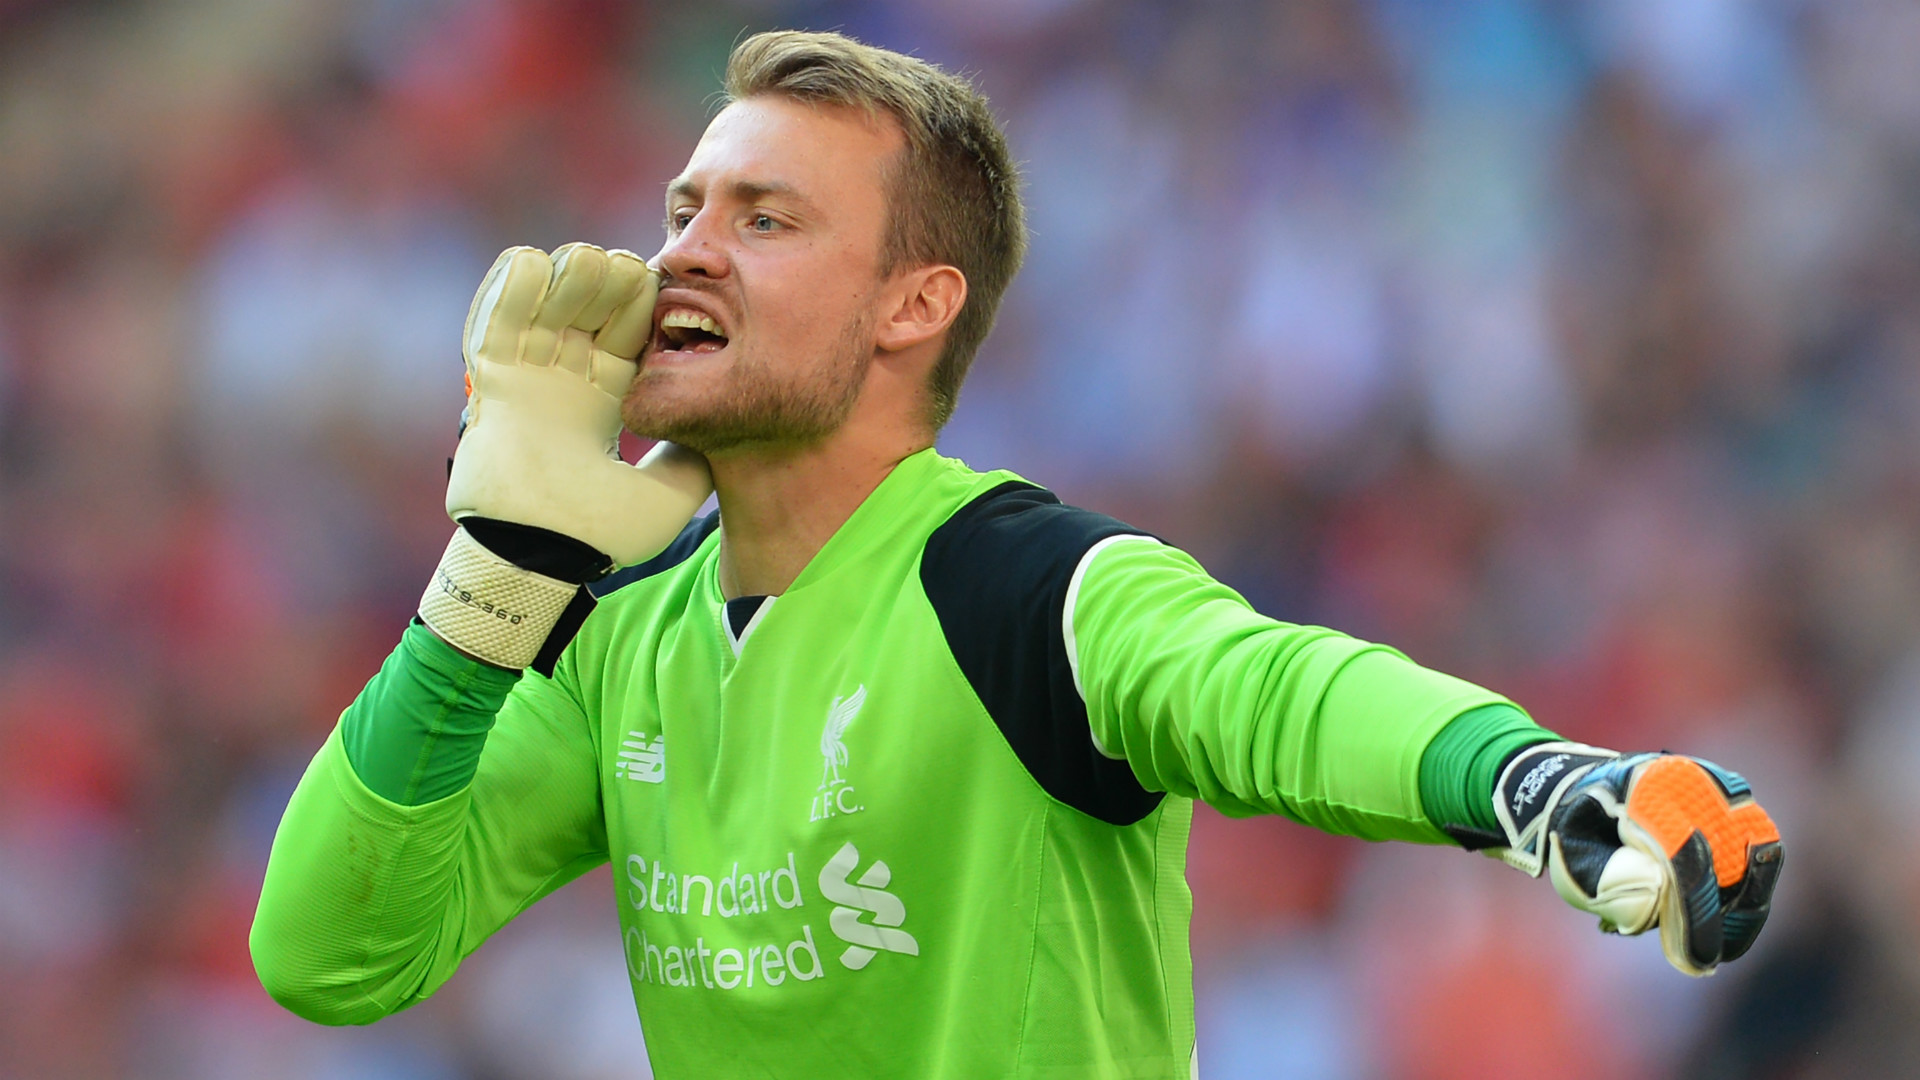 Under-fire Liverpool goalkeeper Karius dropped for